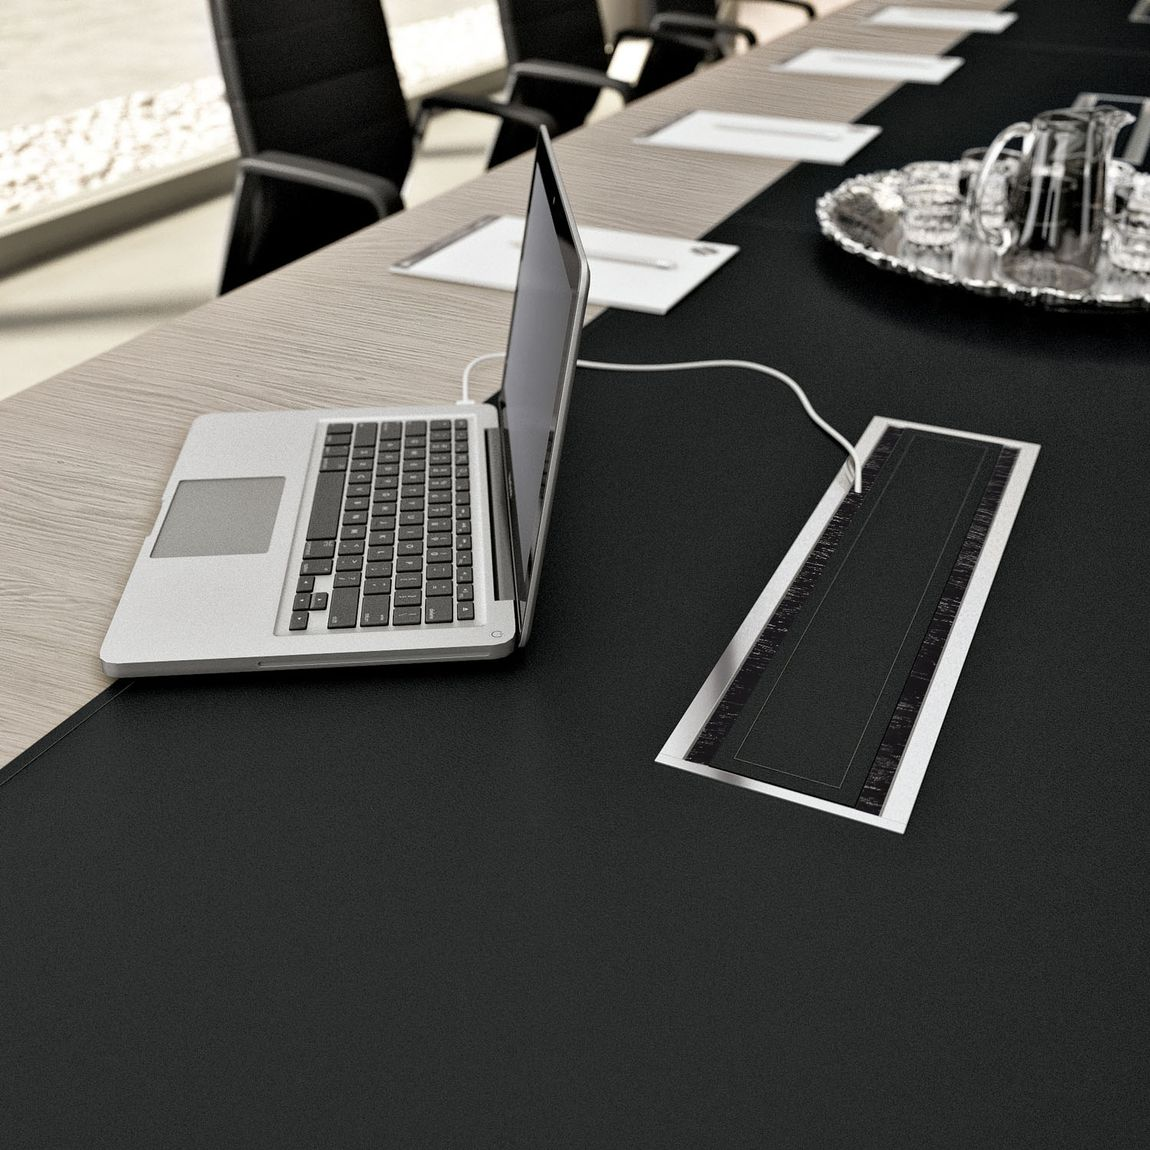 Whats hot minimizing wires with smart office furniture modern the conference room greentooth Gallery